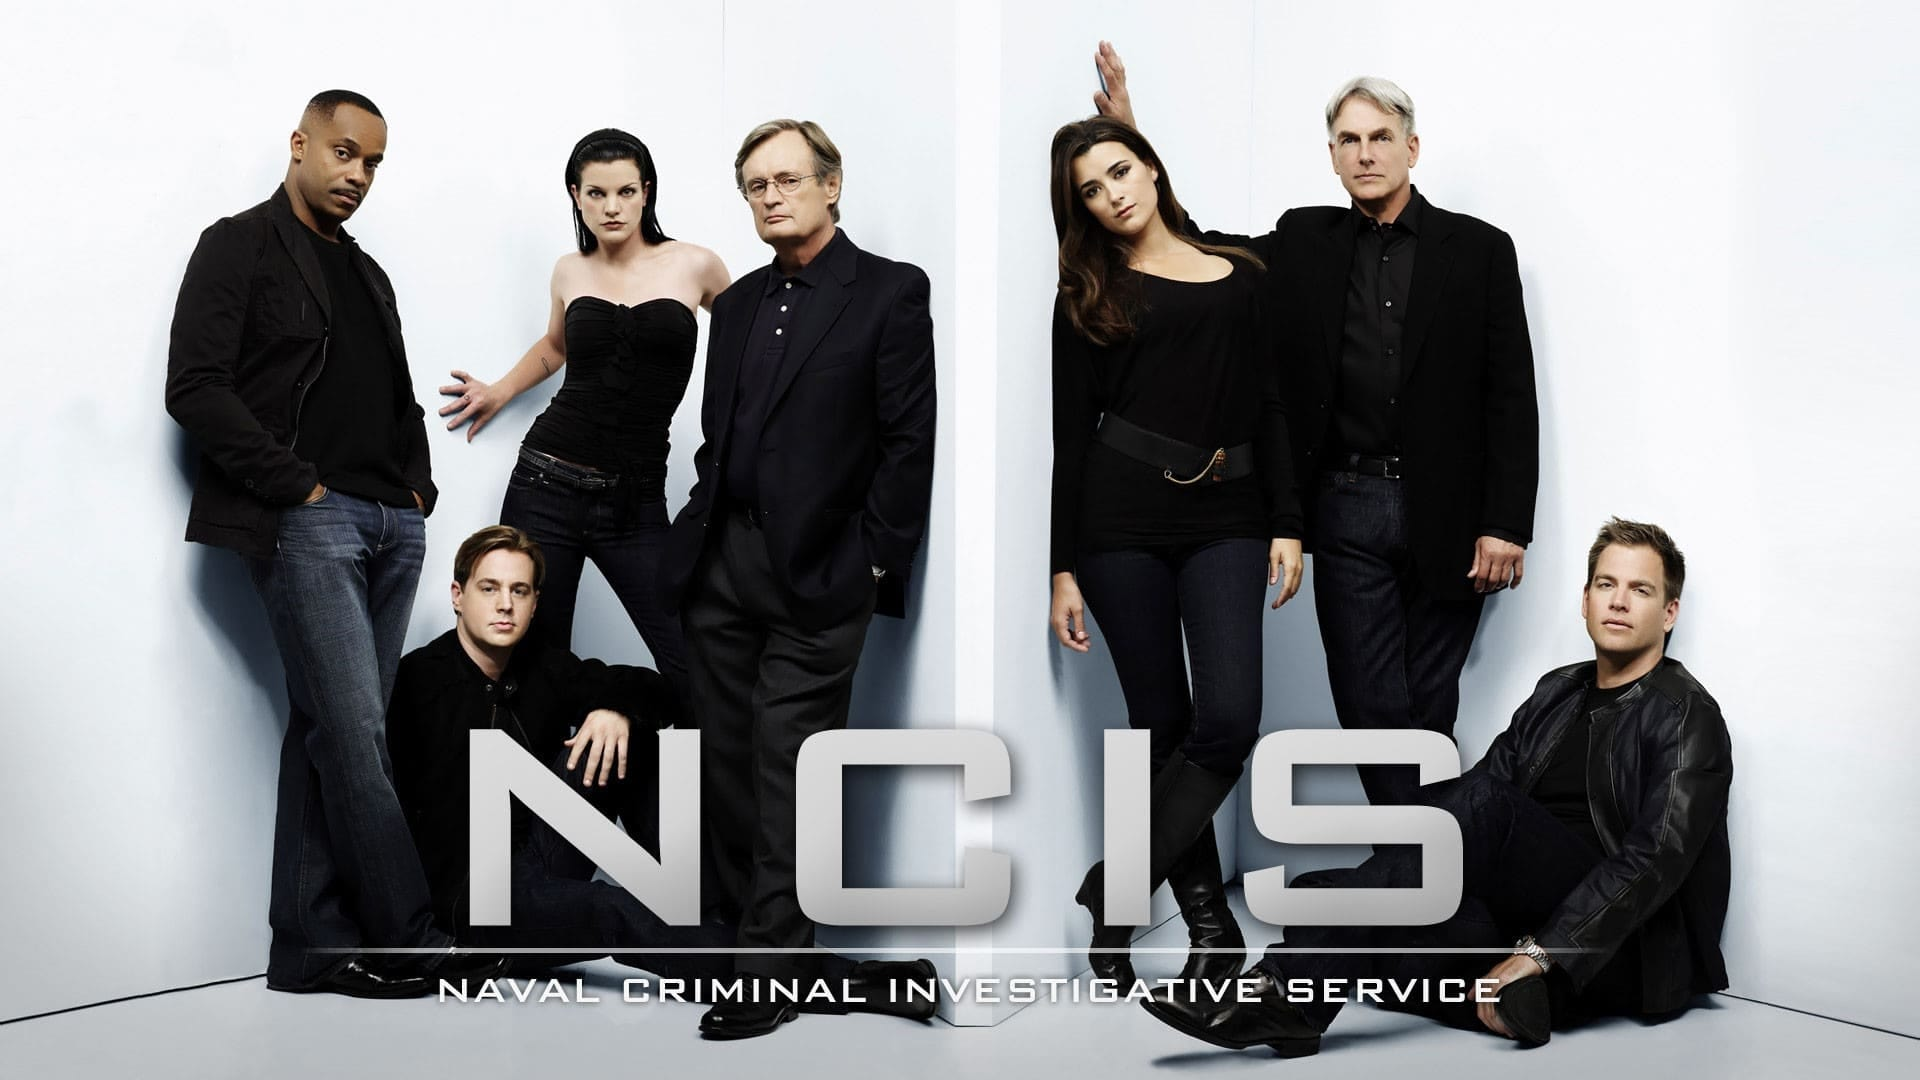 NCIS - Season 0 Episode 32 : N.C.I.S. on Location